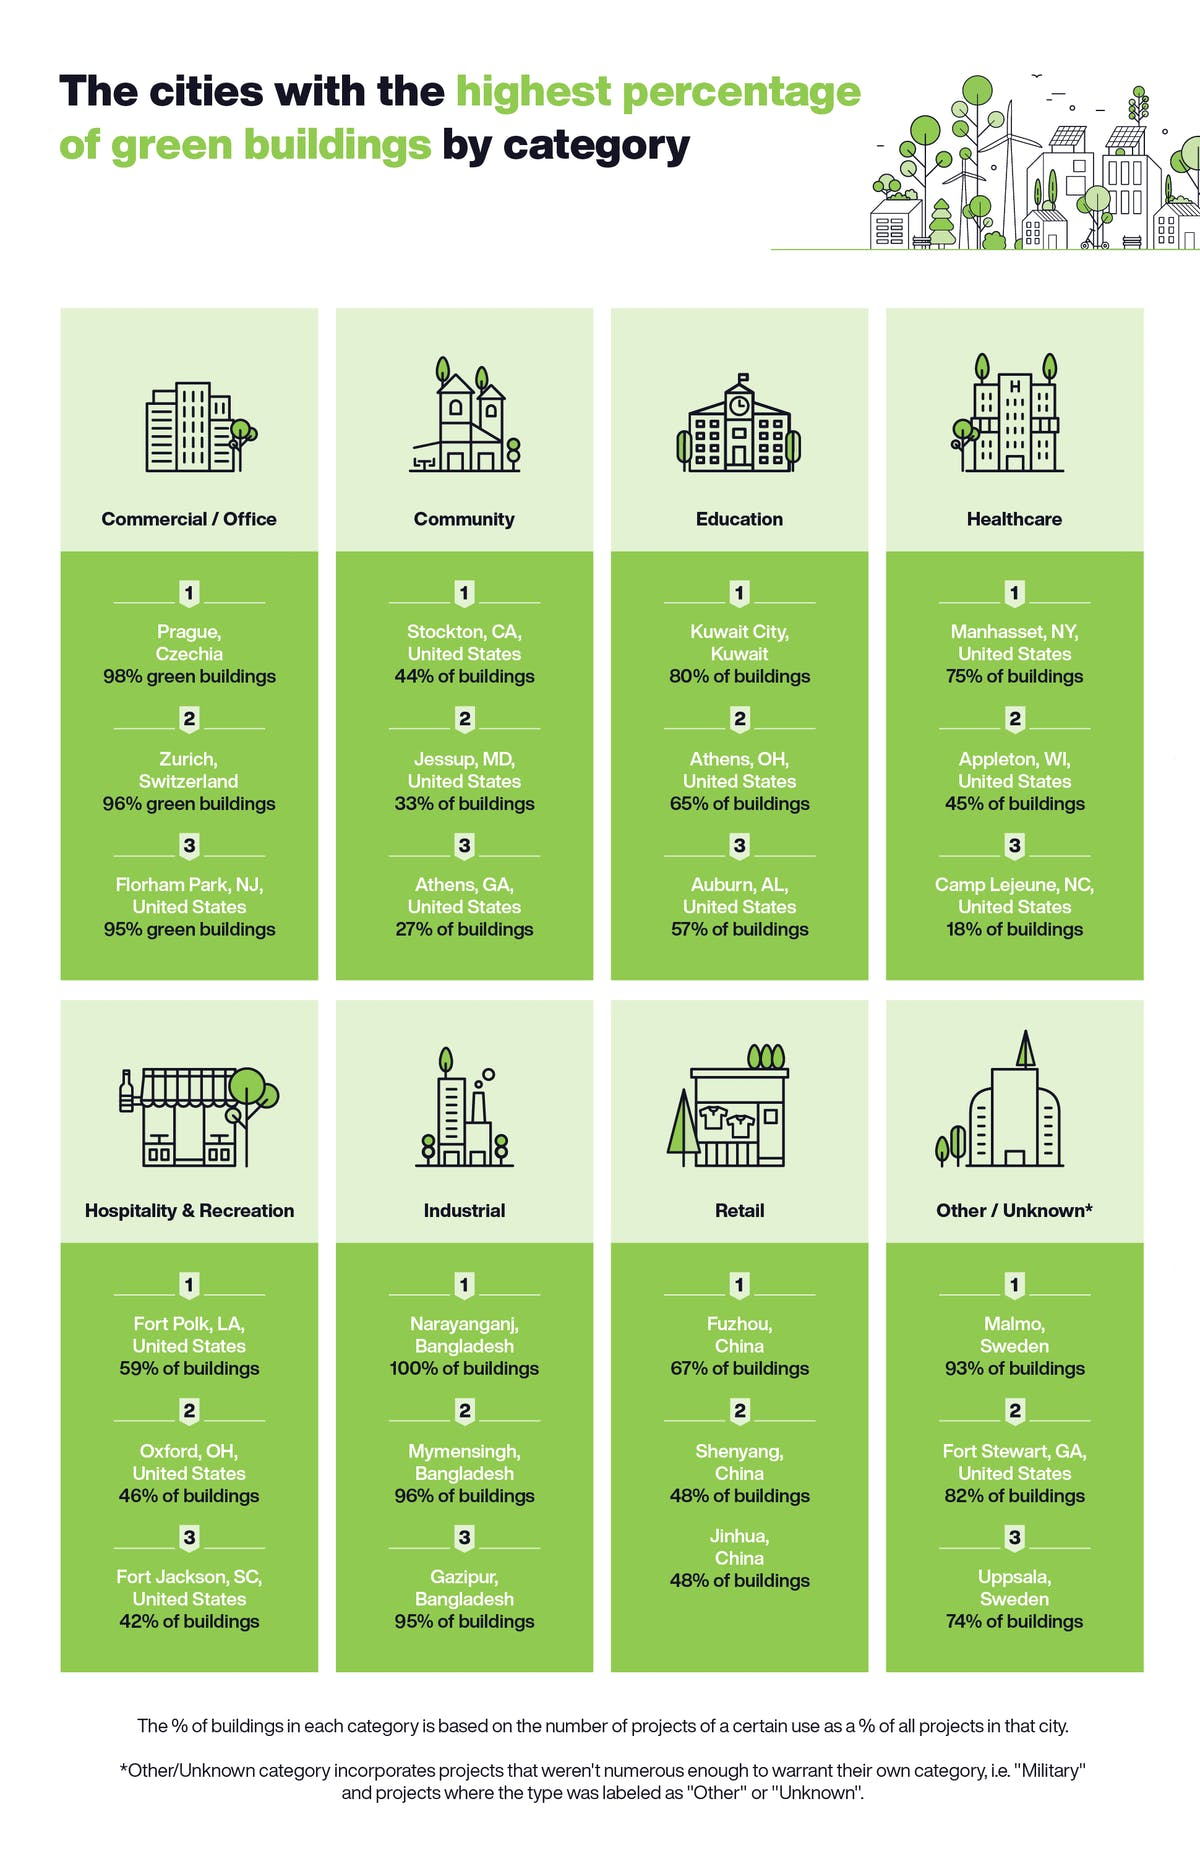 The cities with the highest percentage of green buildings by category table.